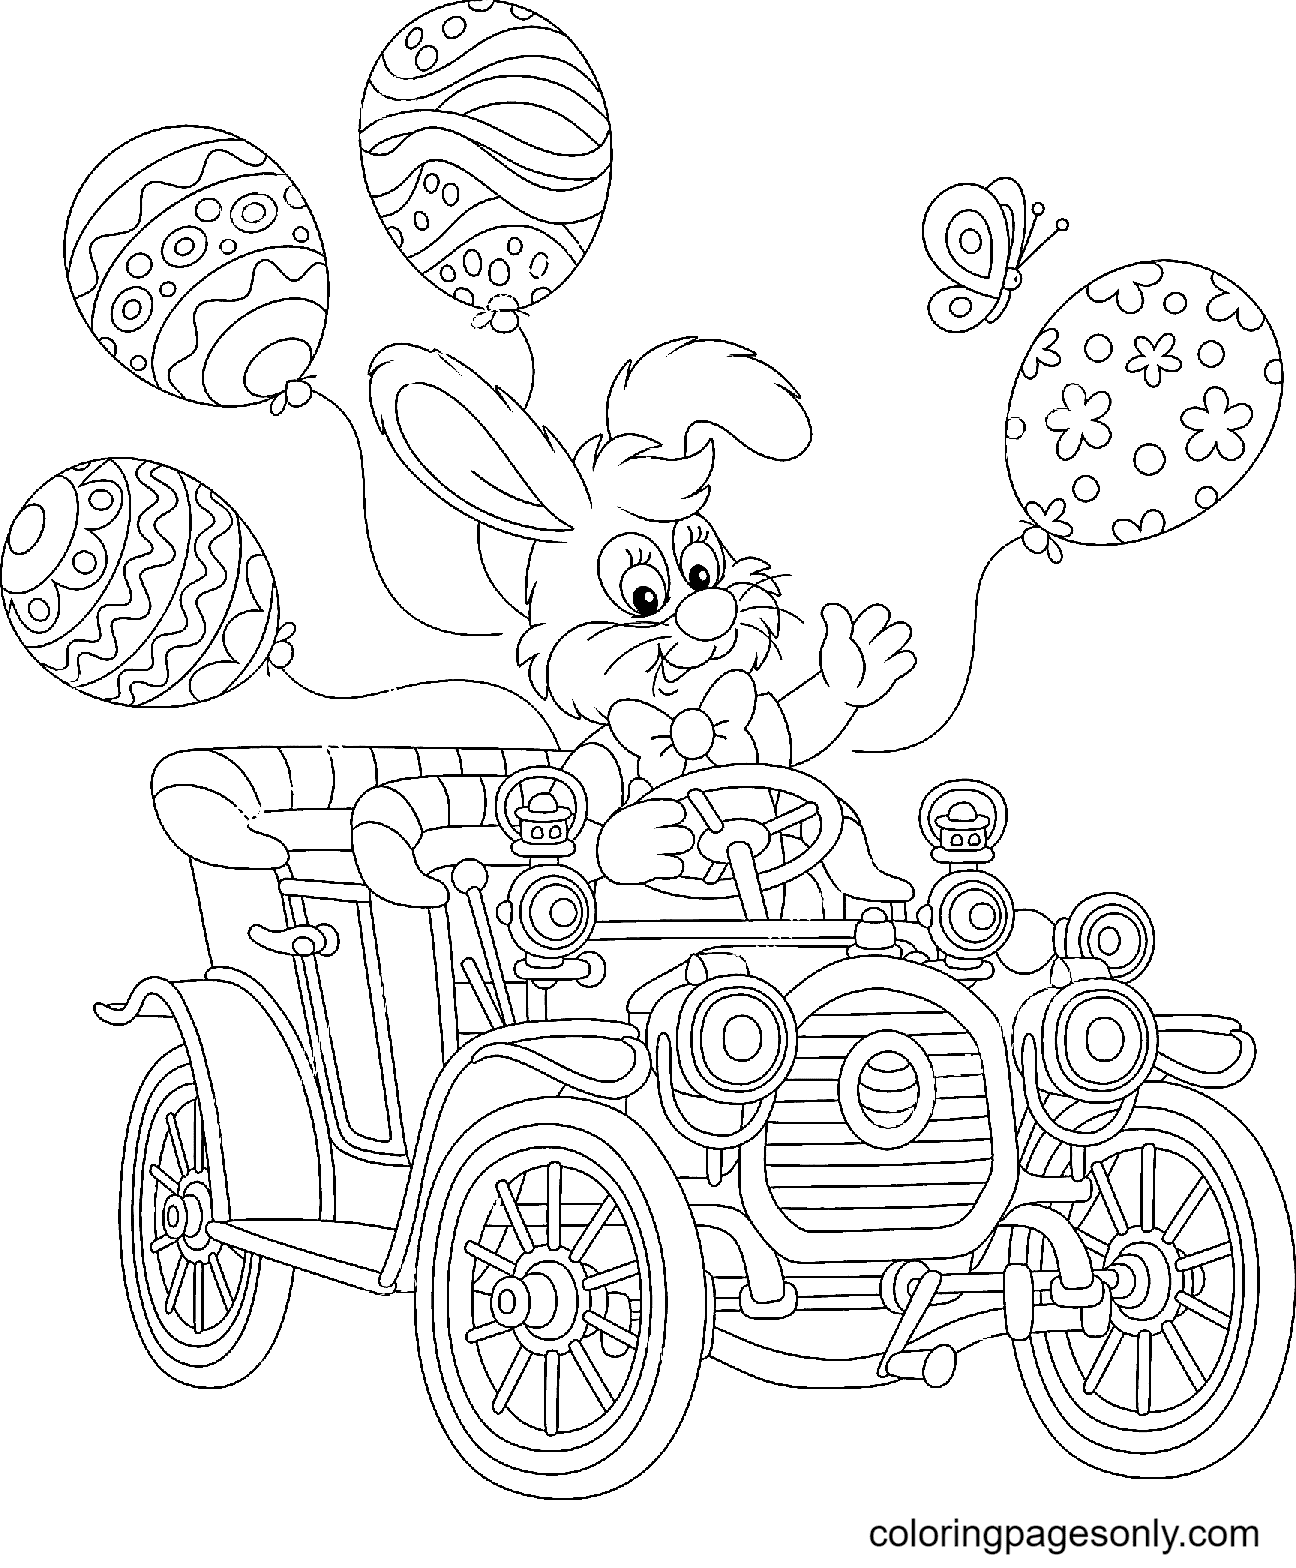 Little Easter Bunny Friendly Smiling Coloring Page